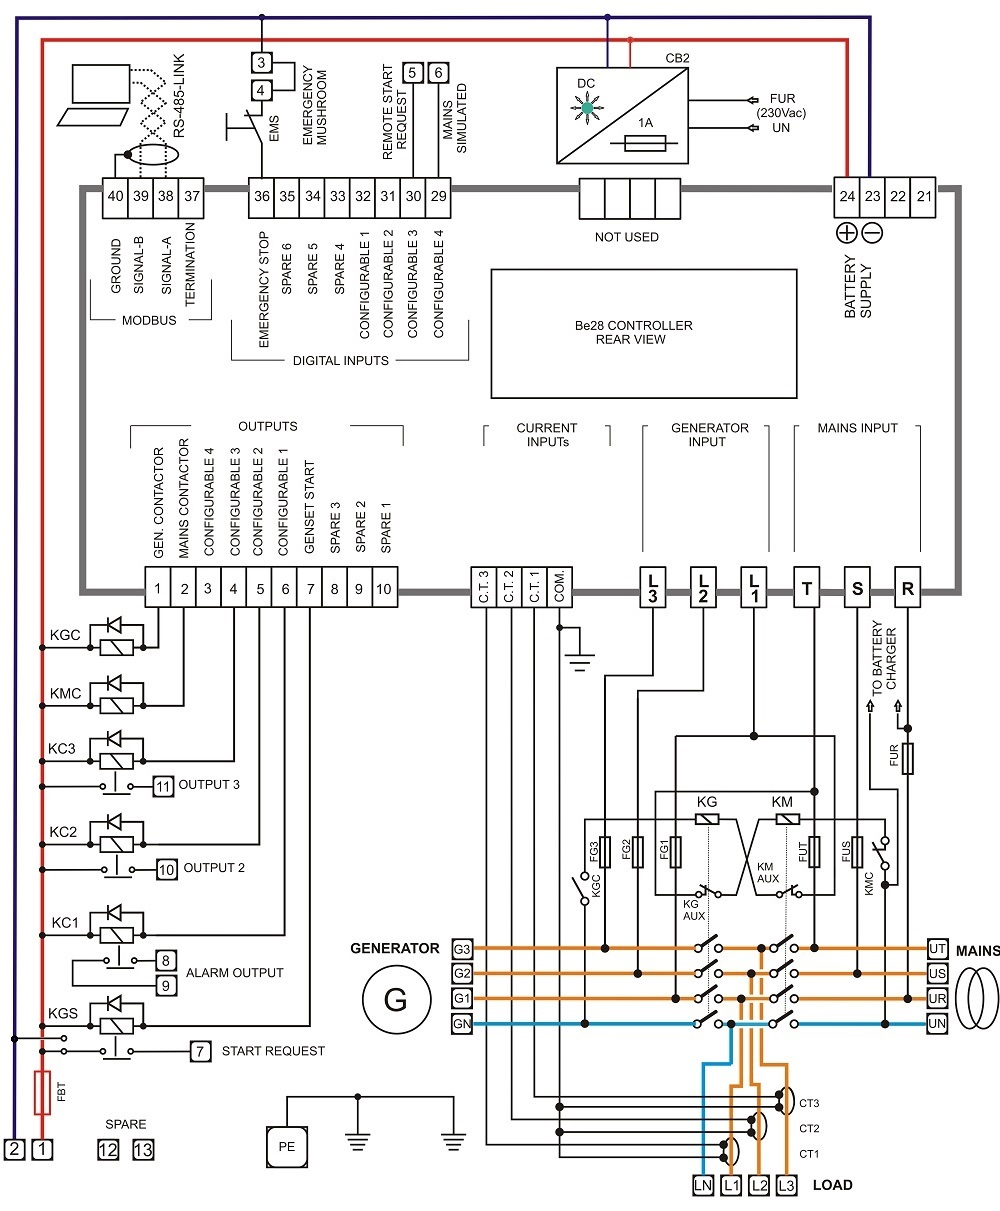 Rover 400 Fuse Box Layout Electrical Wiring Diagrams Land Defender Diagram Free Download 02 Expedition Range L322